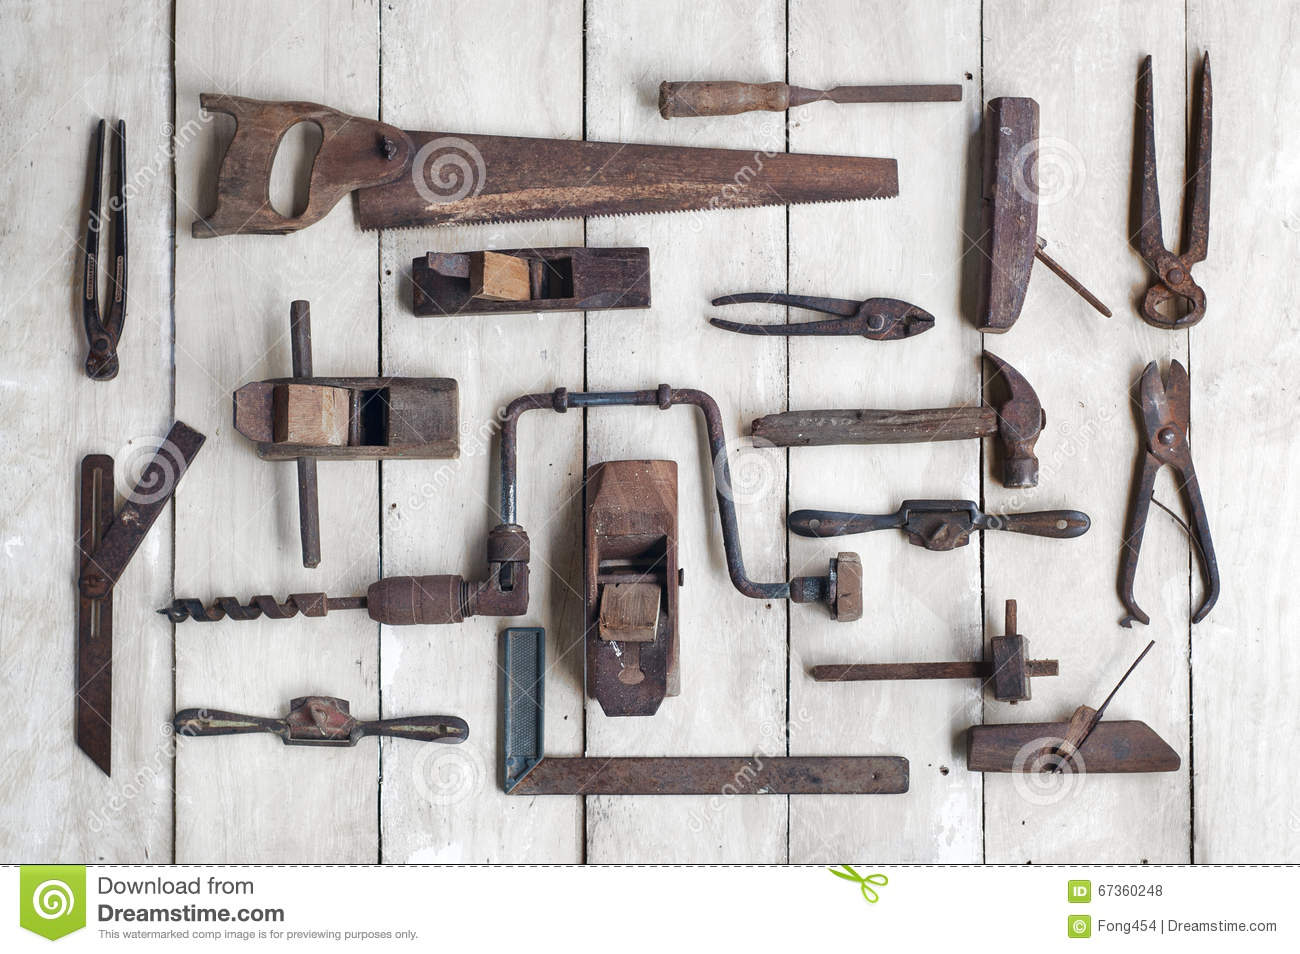 Collection Of Antique Woodworking Tools On Wooden Table Stock Photo - Image: 67360248